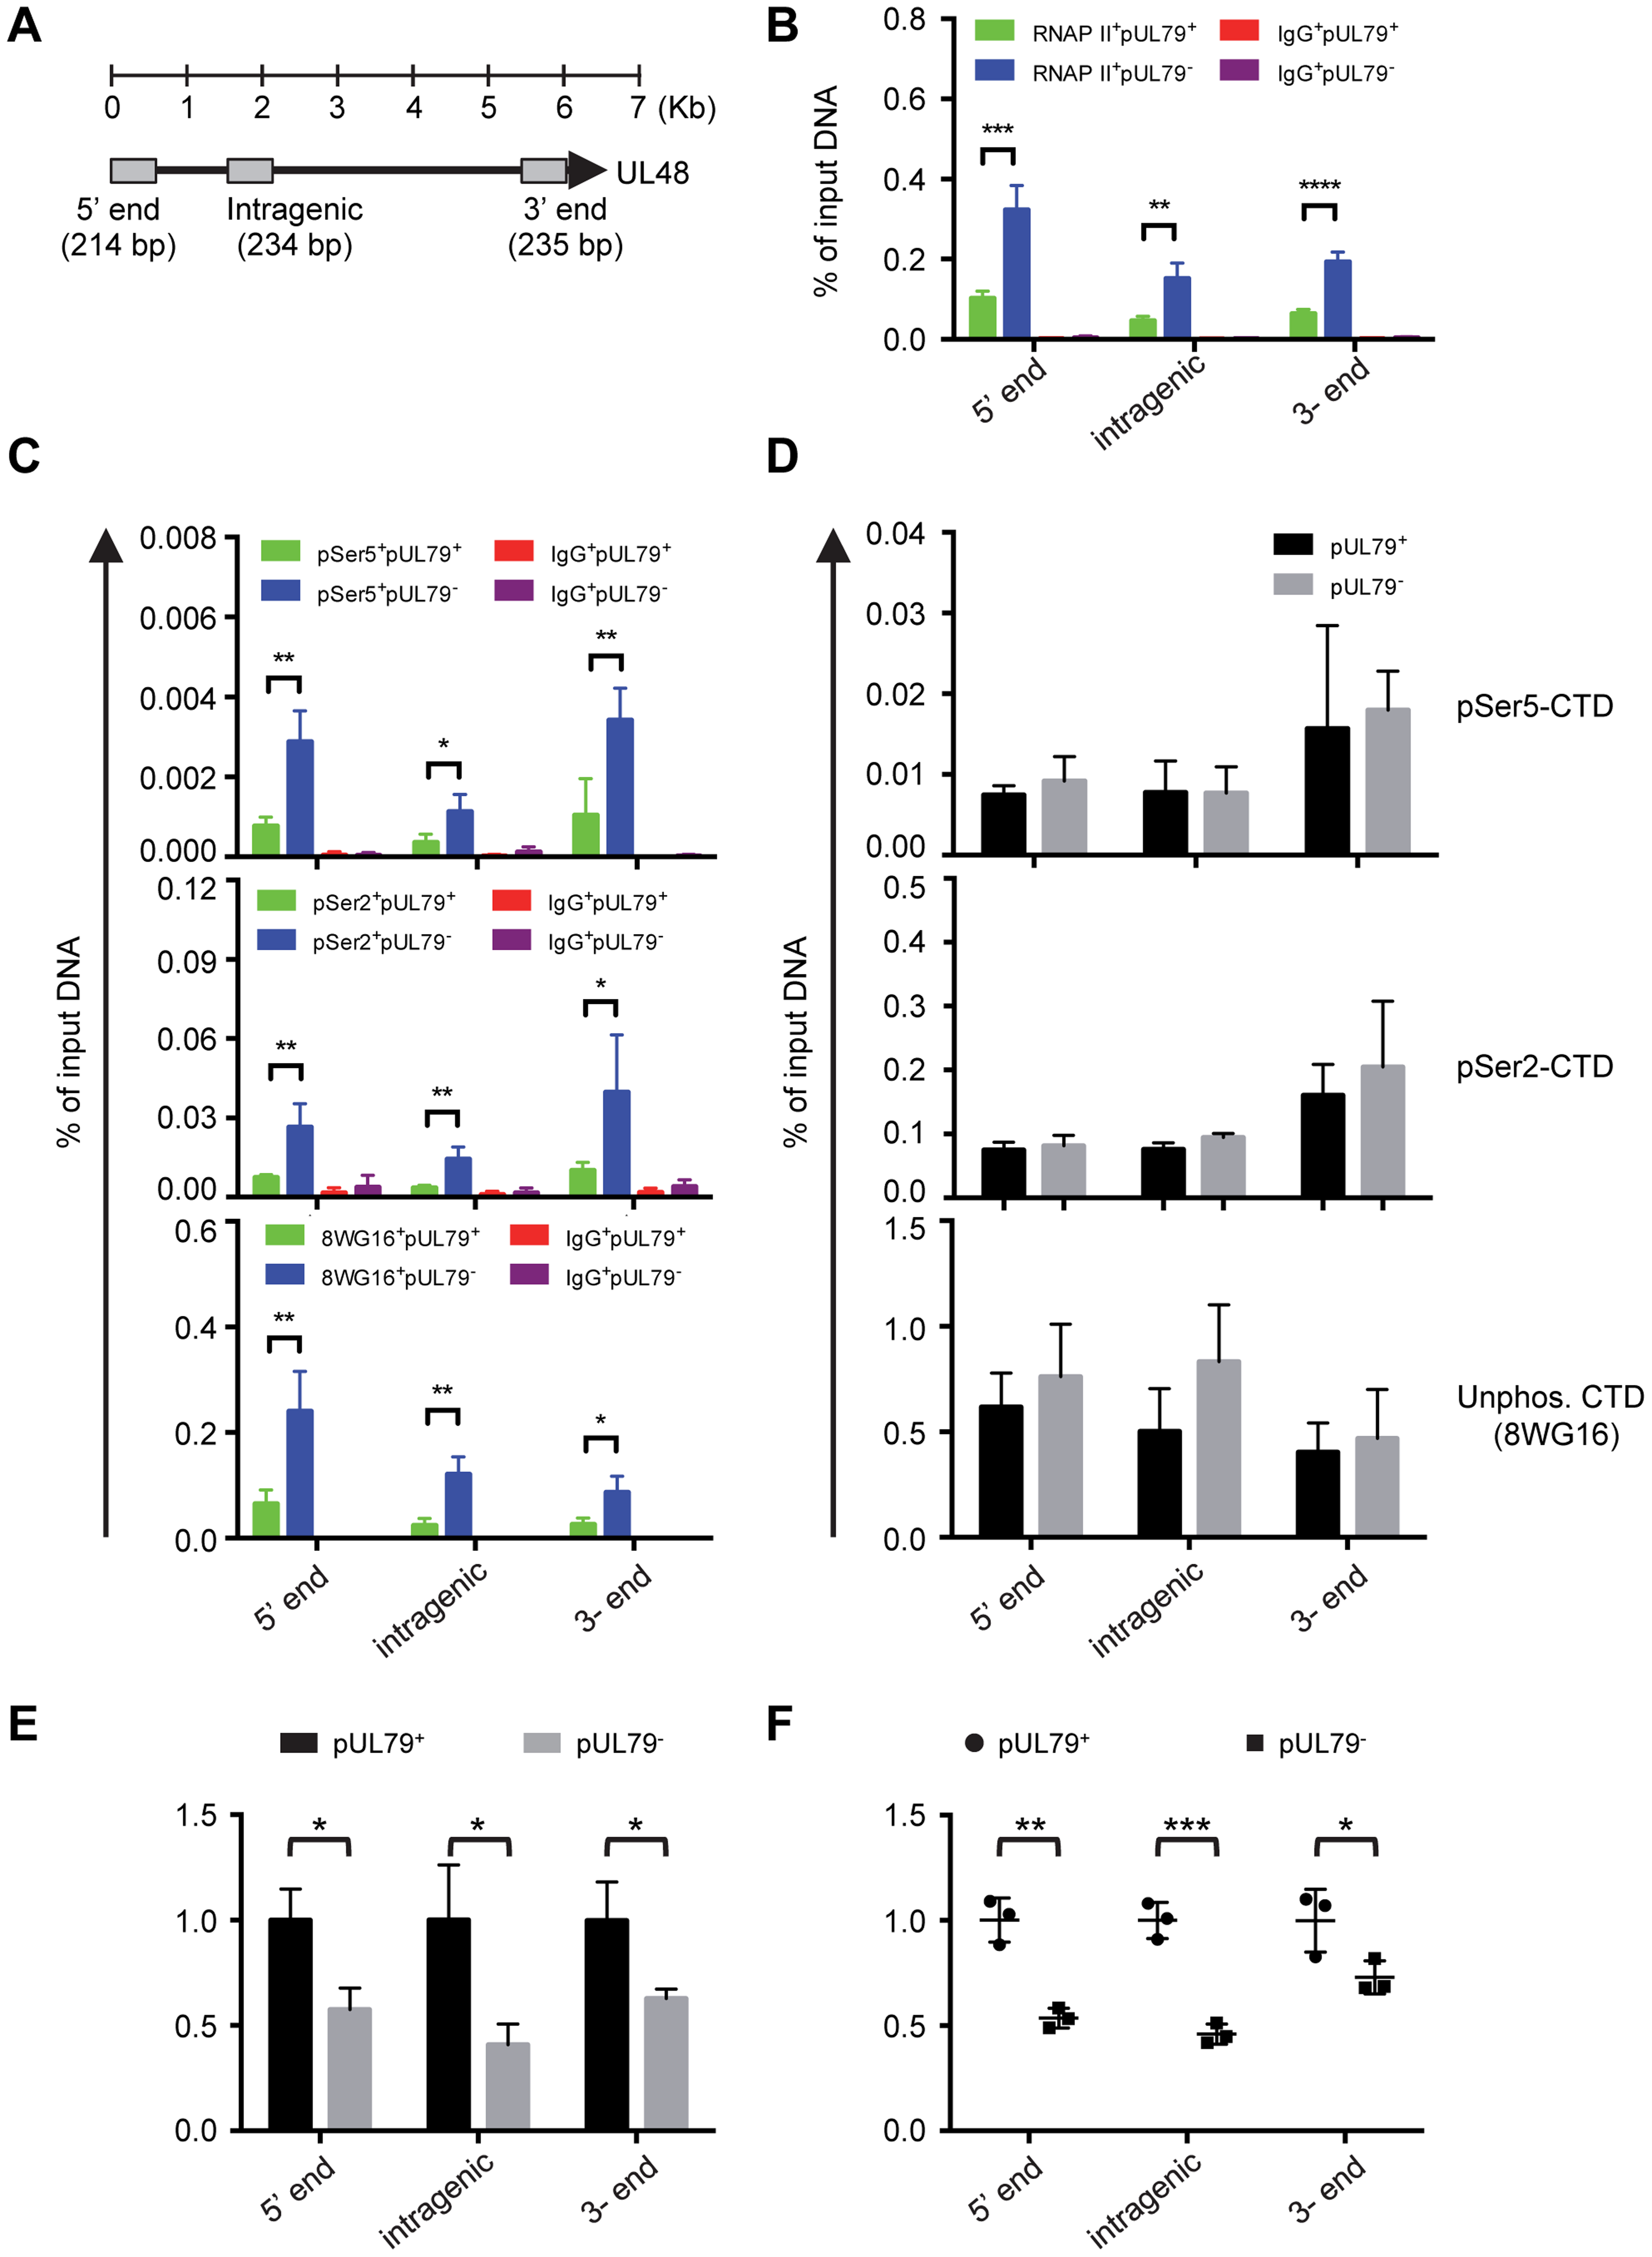 pUL79 alters the rate of transcriptional elongation at various regions of the UL48 gene.